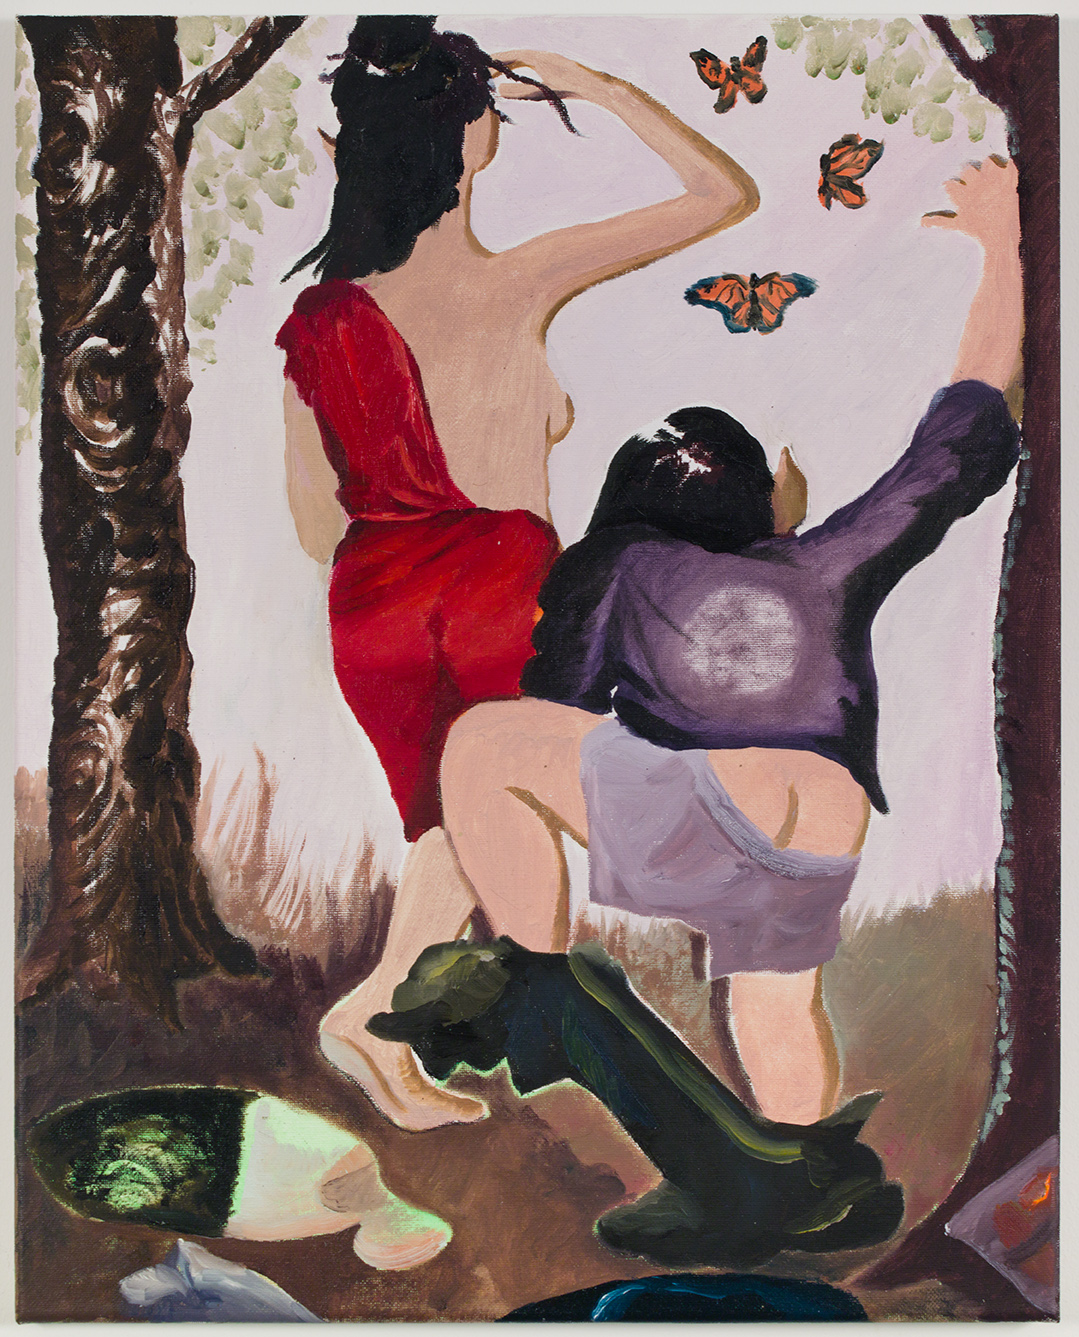 Beauty and the Klutz , 2019, oil on canvas, 20 x 16 in/50.80 x 40.64 cm